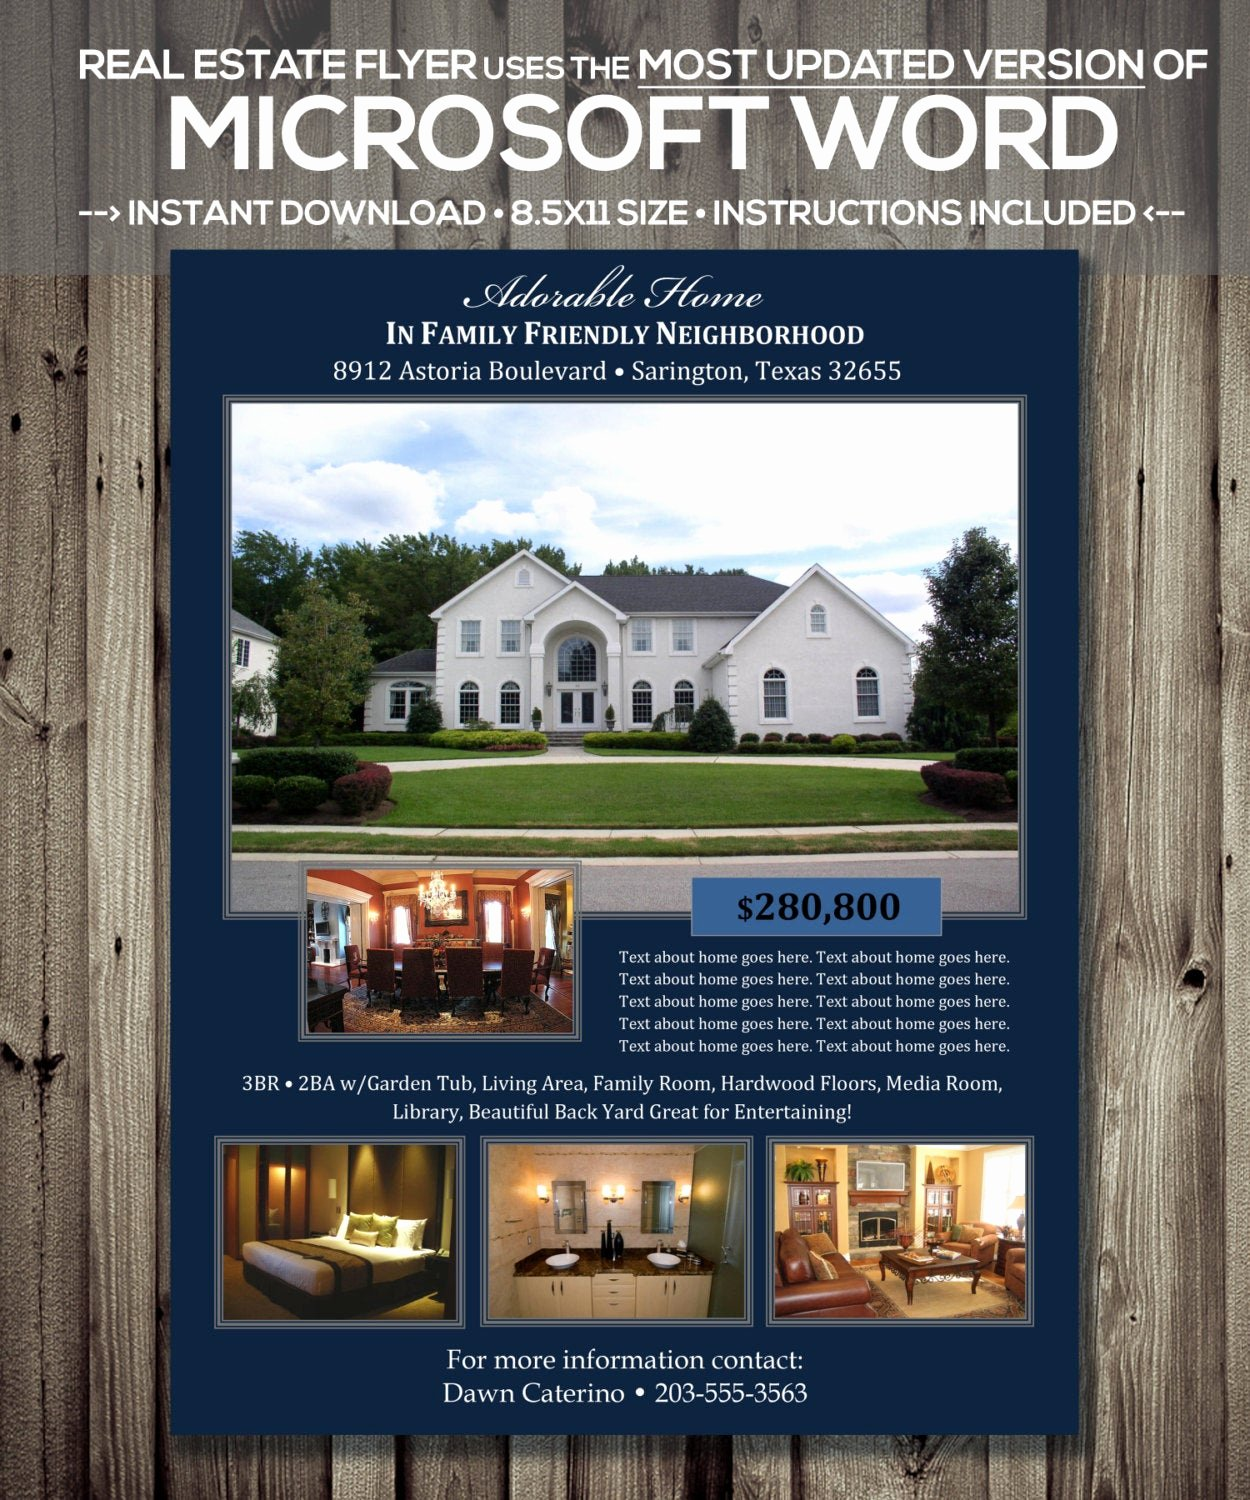 Home for Sale Flyer Inspirational Real Estate Flyer Template Microsoft Word Cx Version